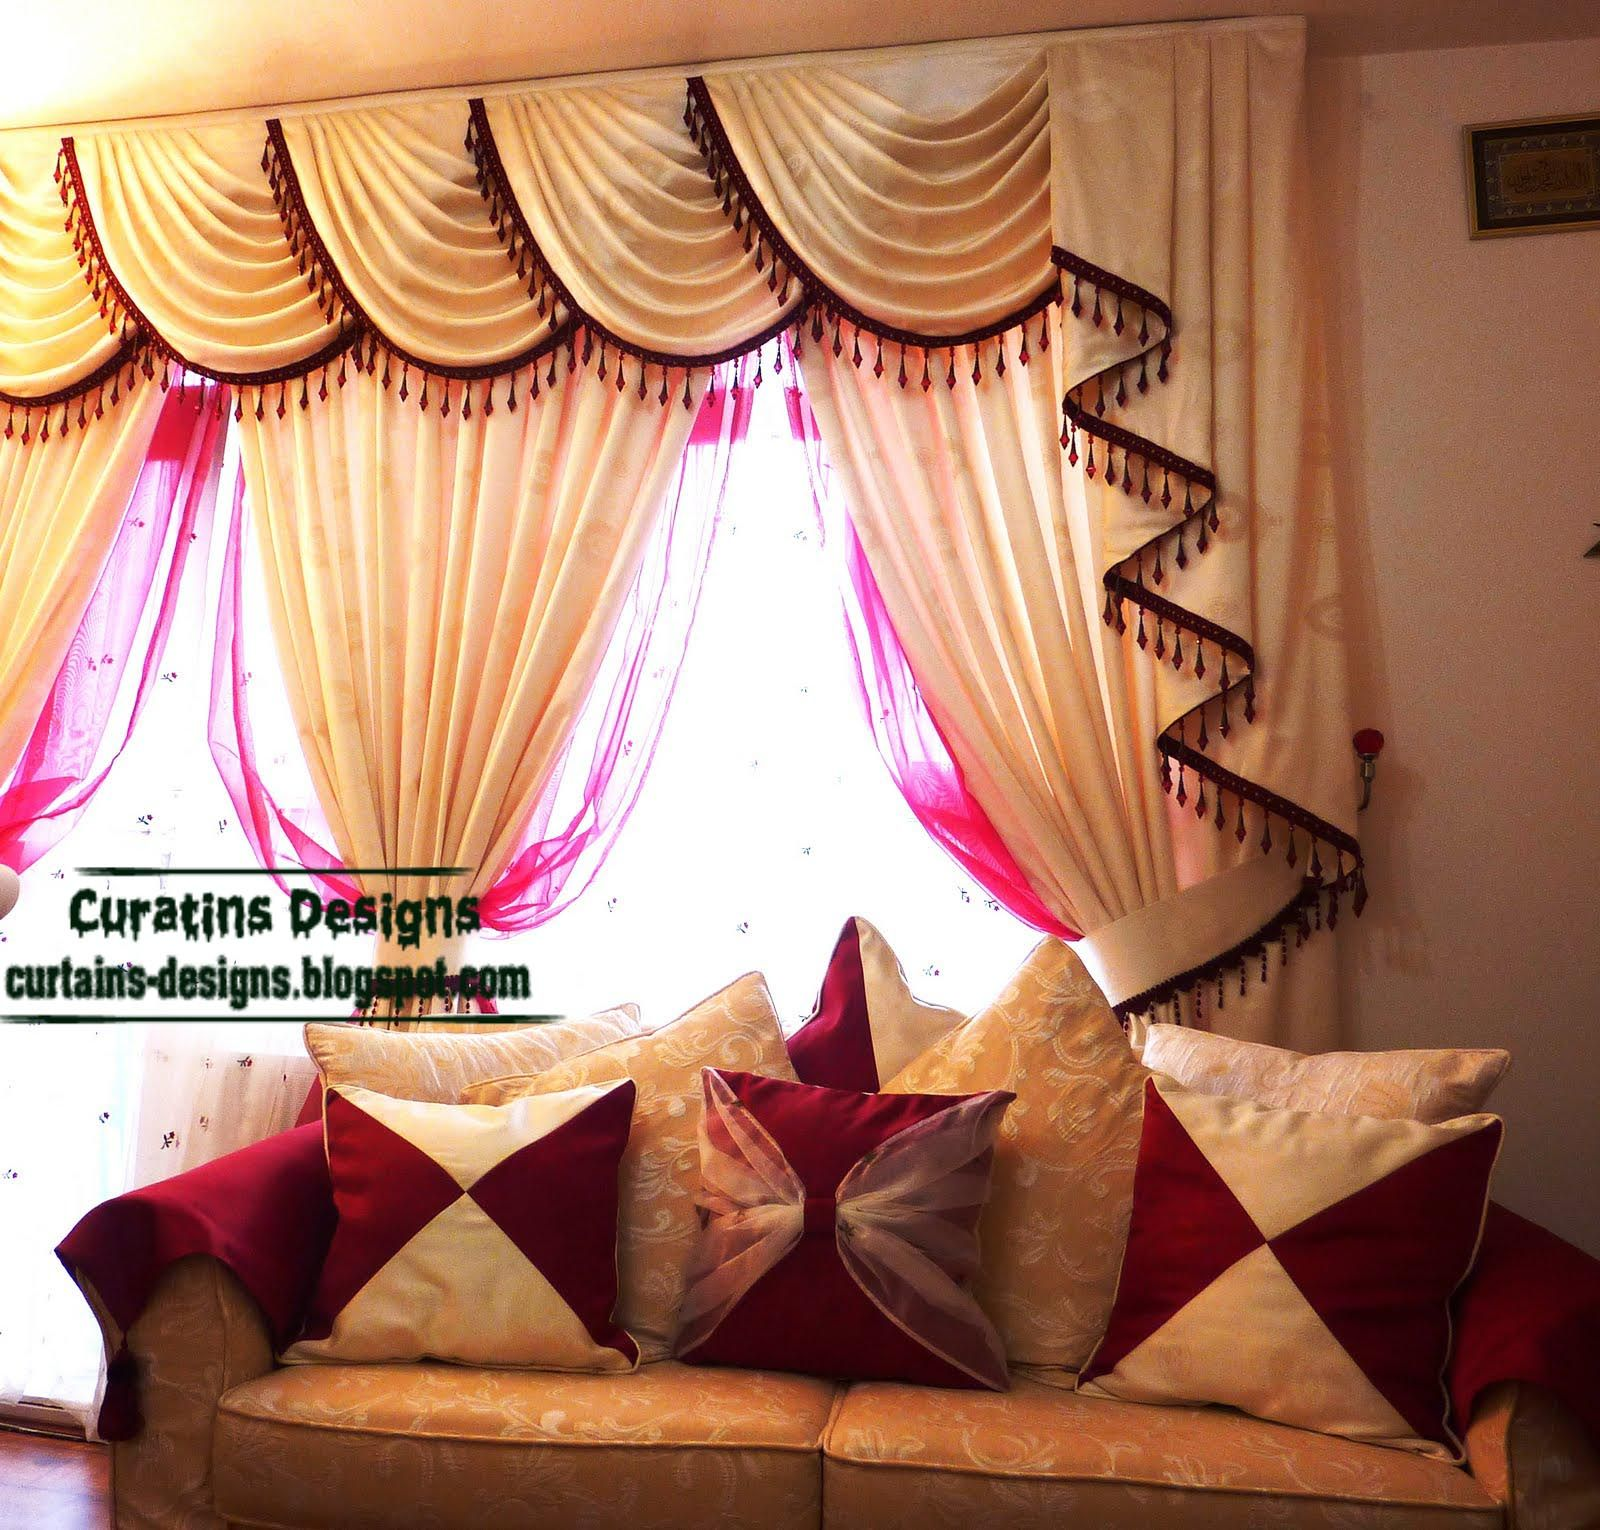 Living Room Curtain Design Glamorous Livingroomcurtains  Indian Drapes Curtain Design For Living Decorating Inspiration